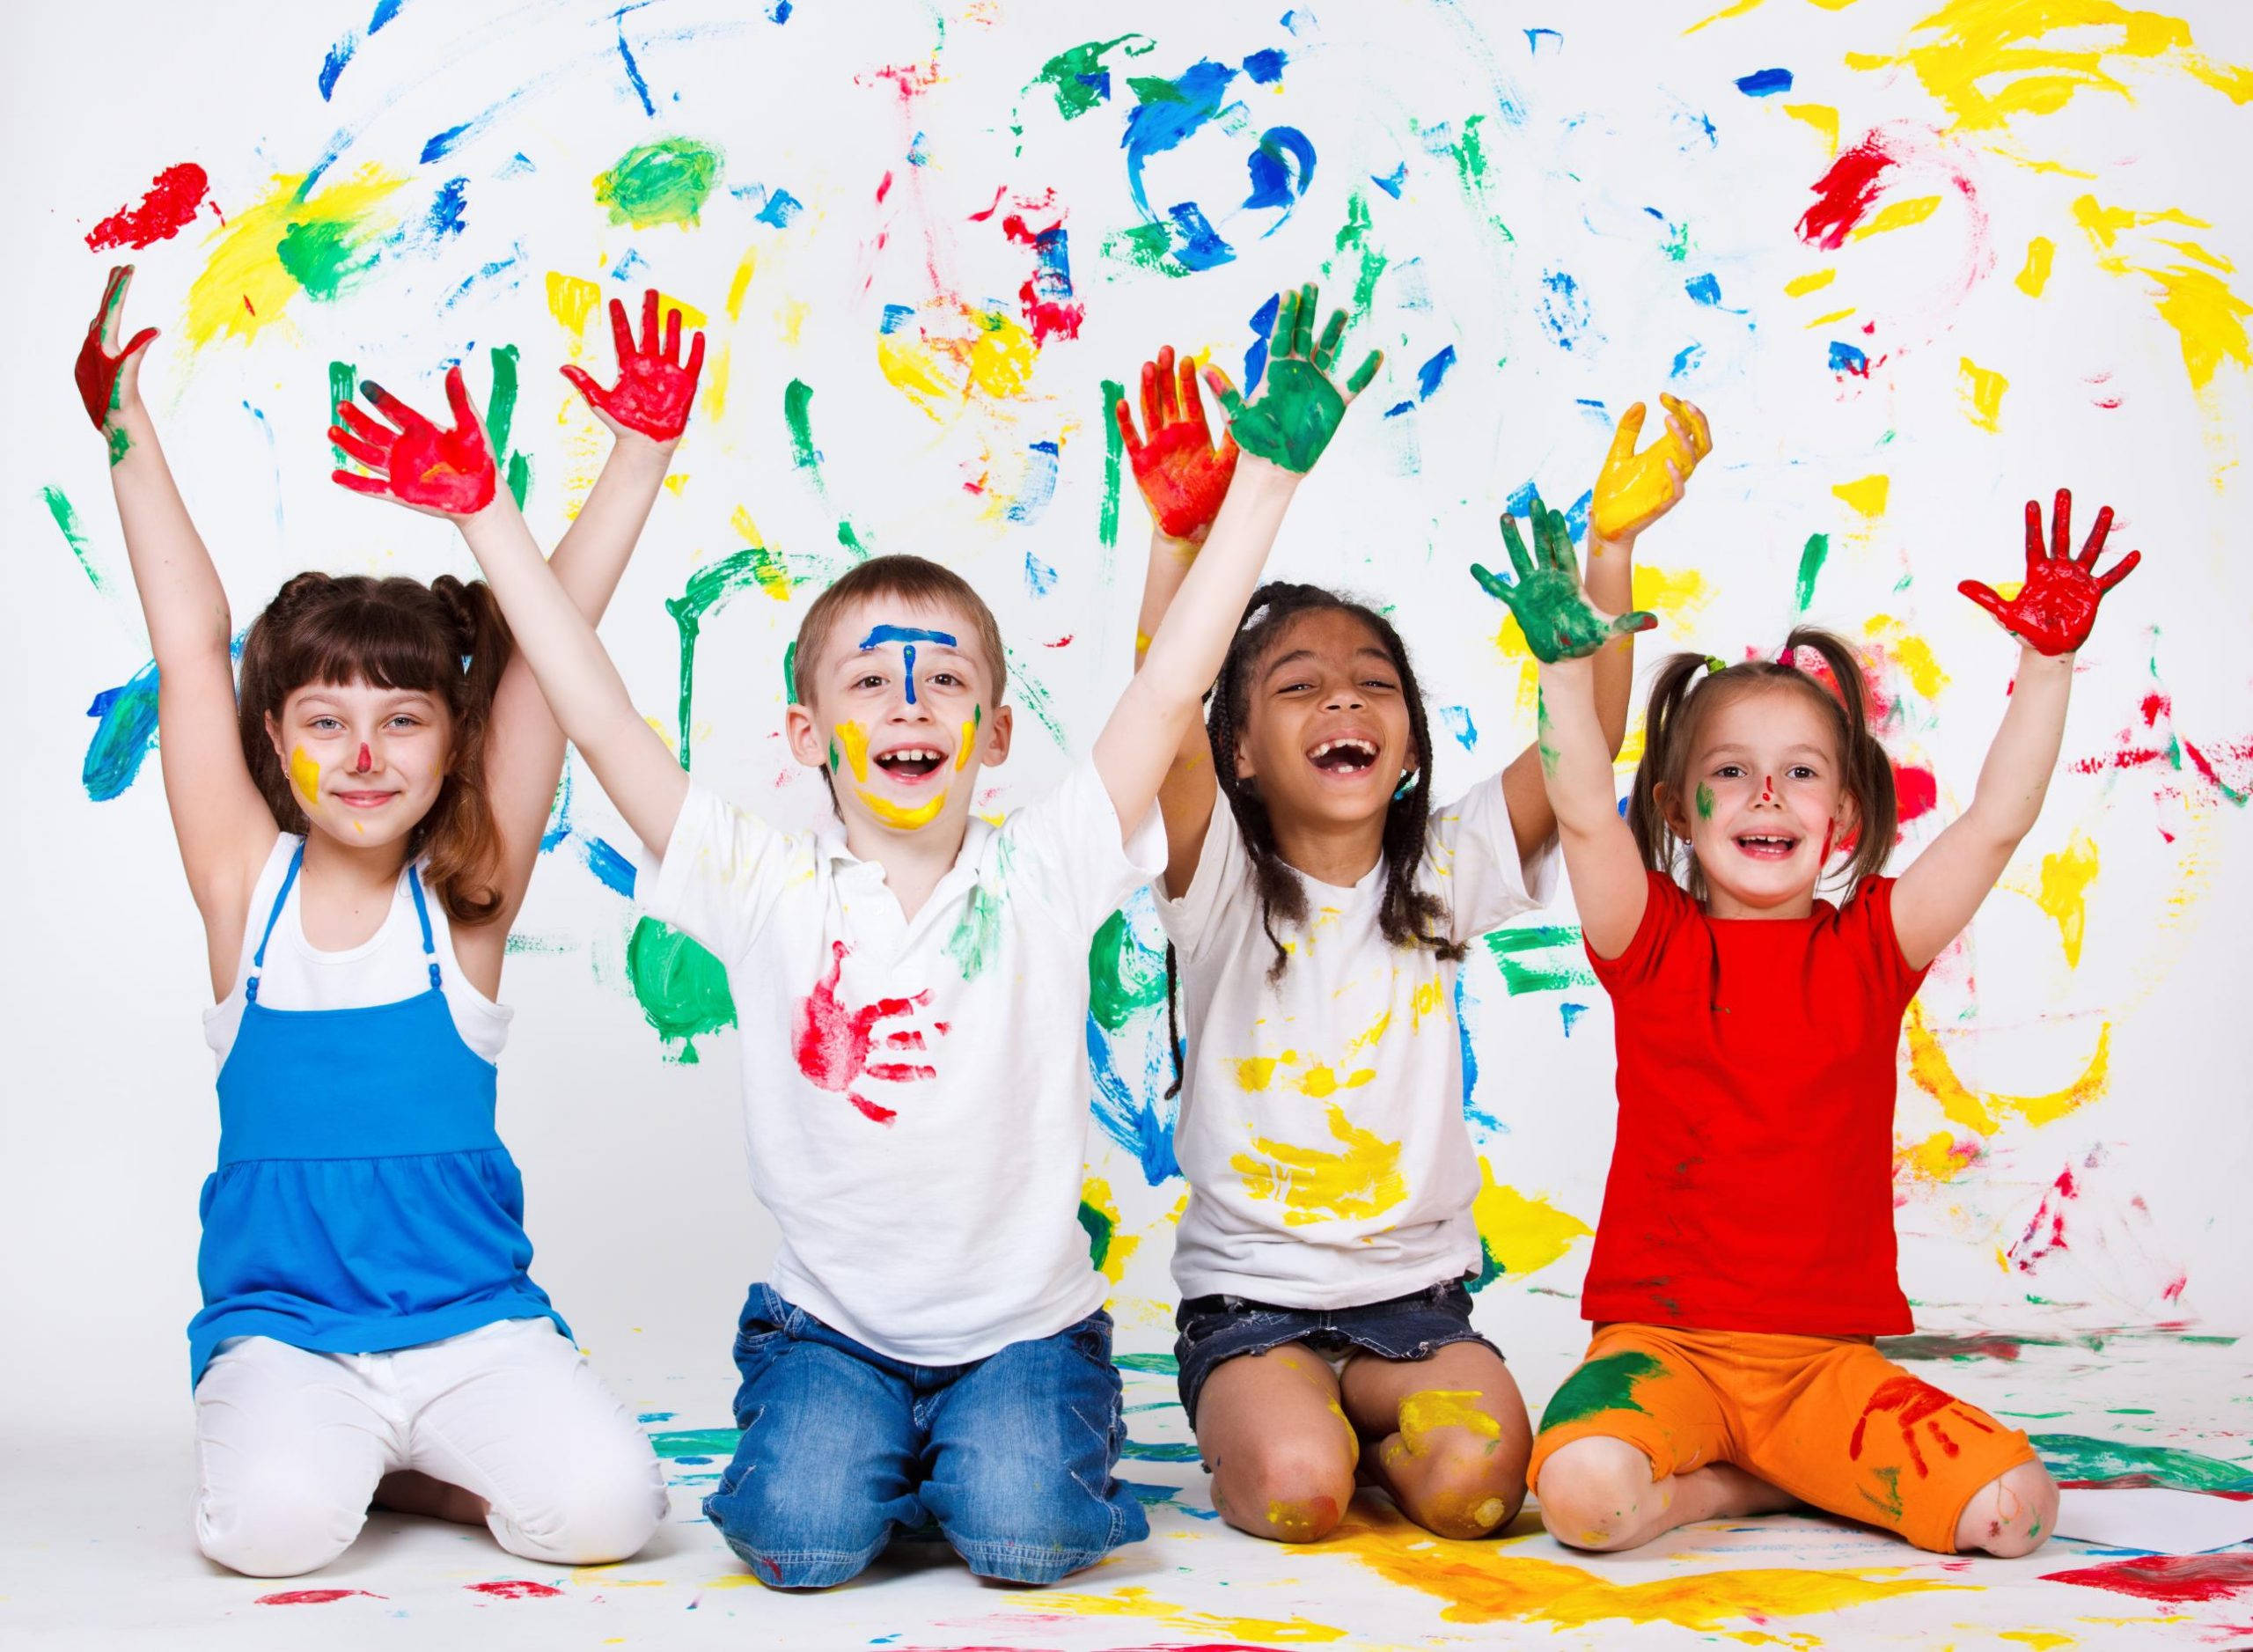 Almost $1 Billion Profit for Childcare Industry in 2015: Can We Expect Continuous Growth?